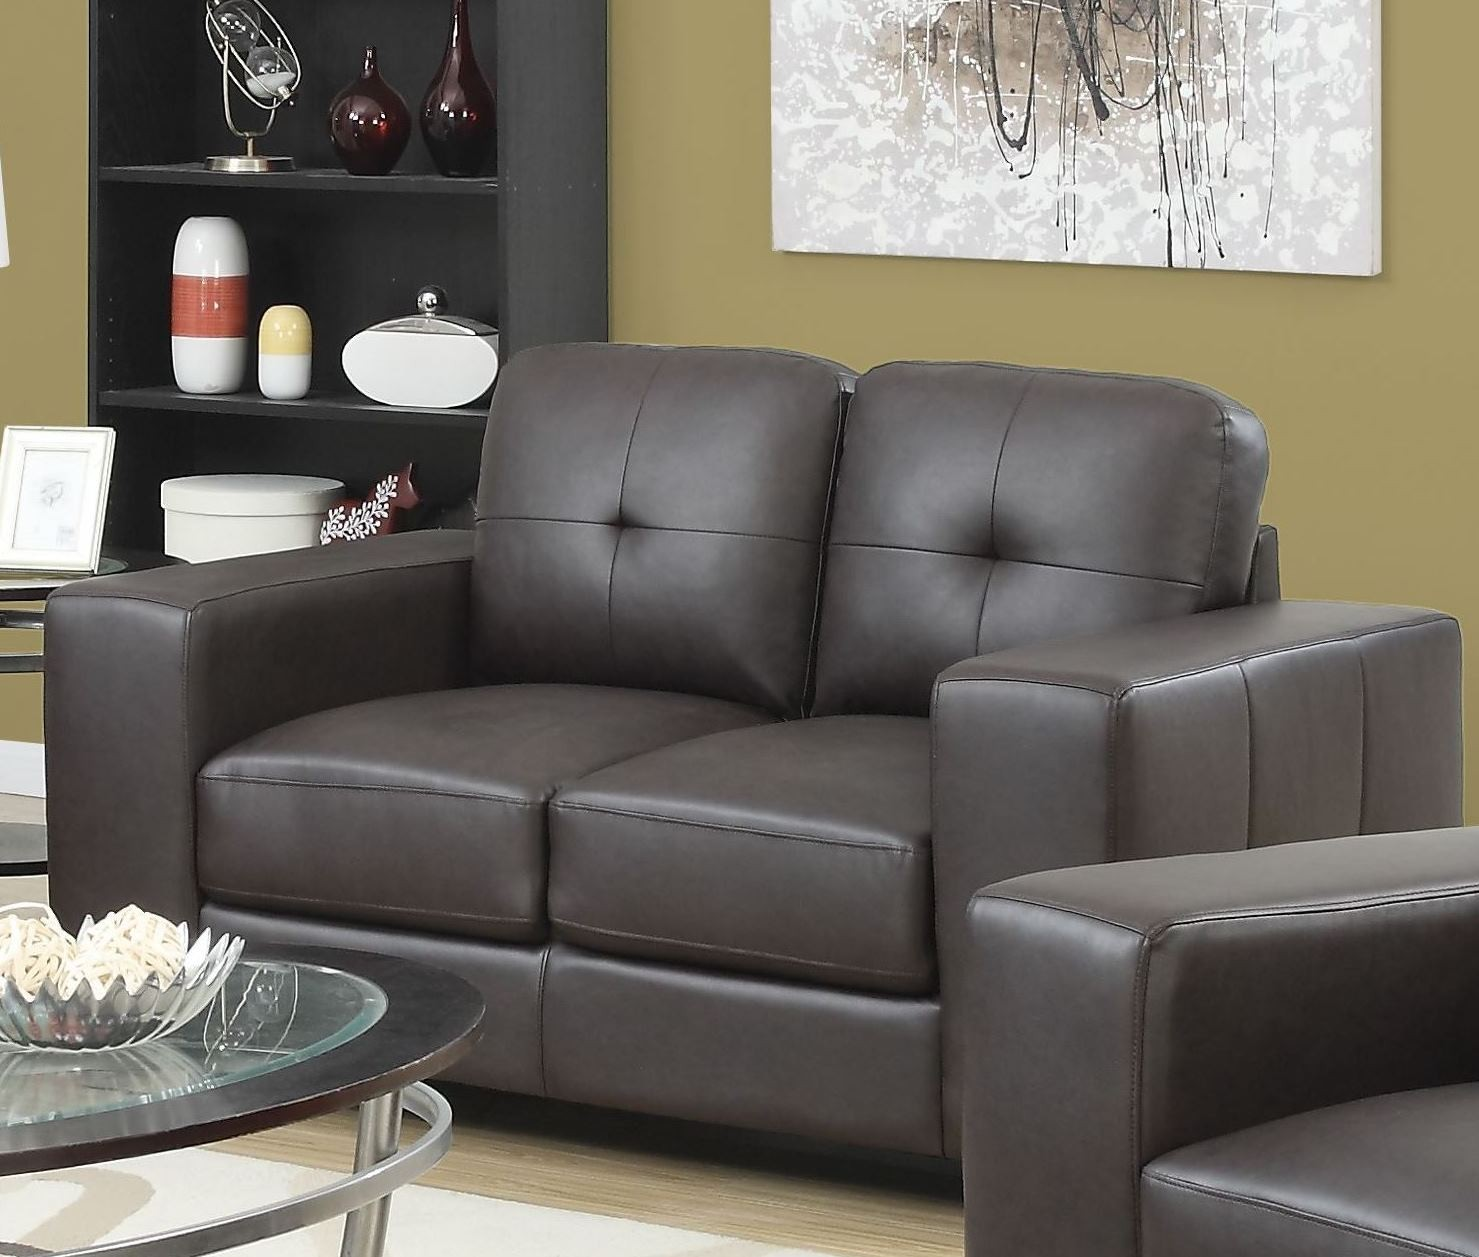 Dark brown bonded leather living room set 8223br monarch for Dark brown living room set